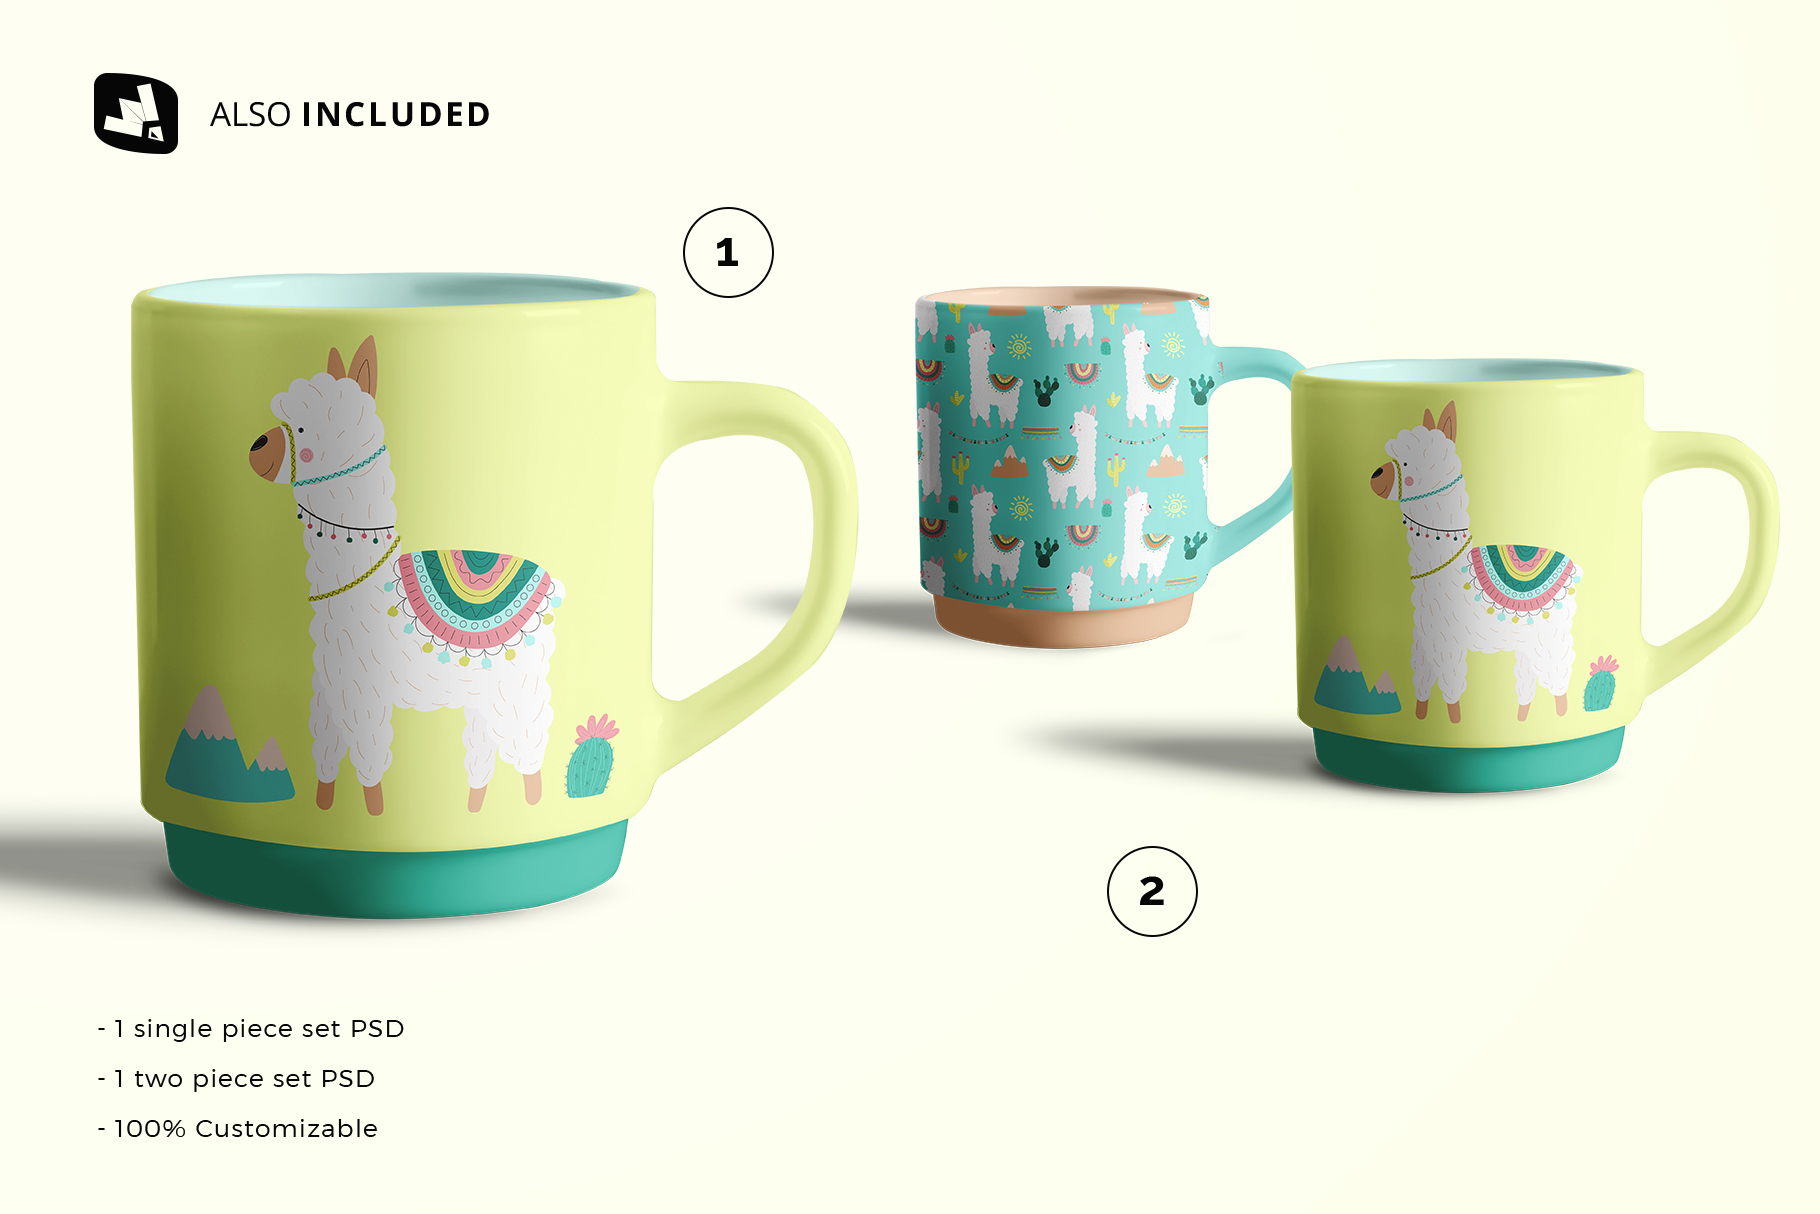 files included in the porcelain coffee cups set mockup